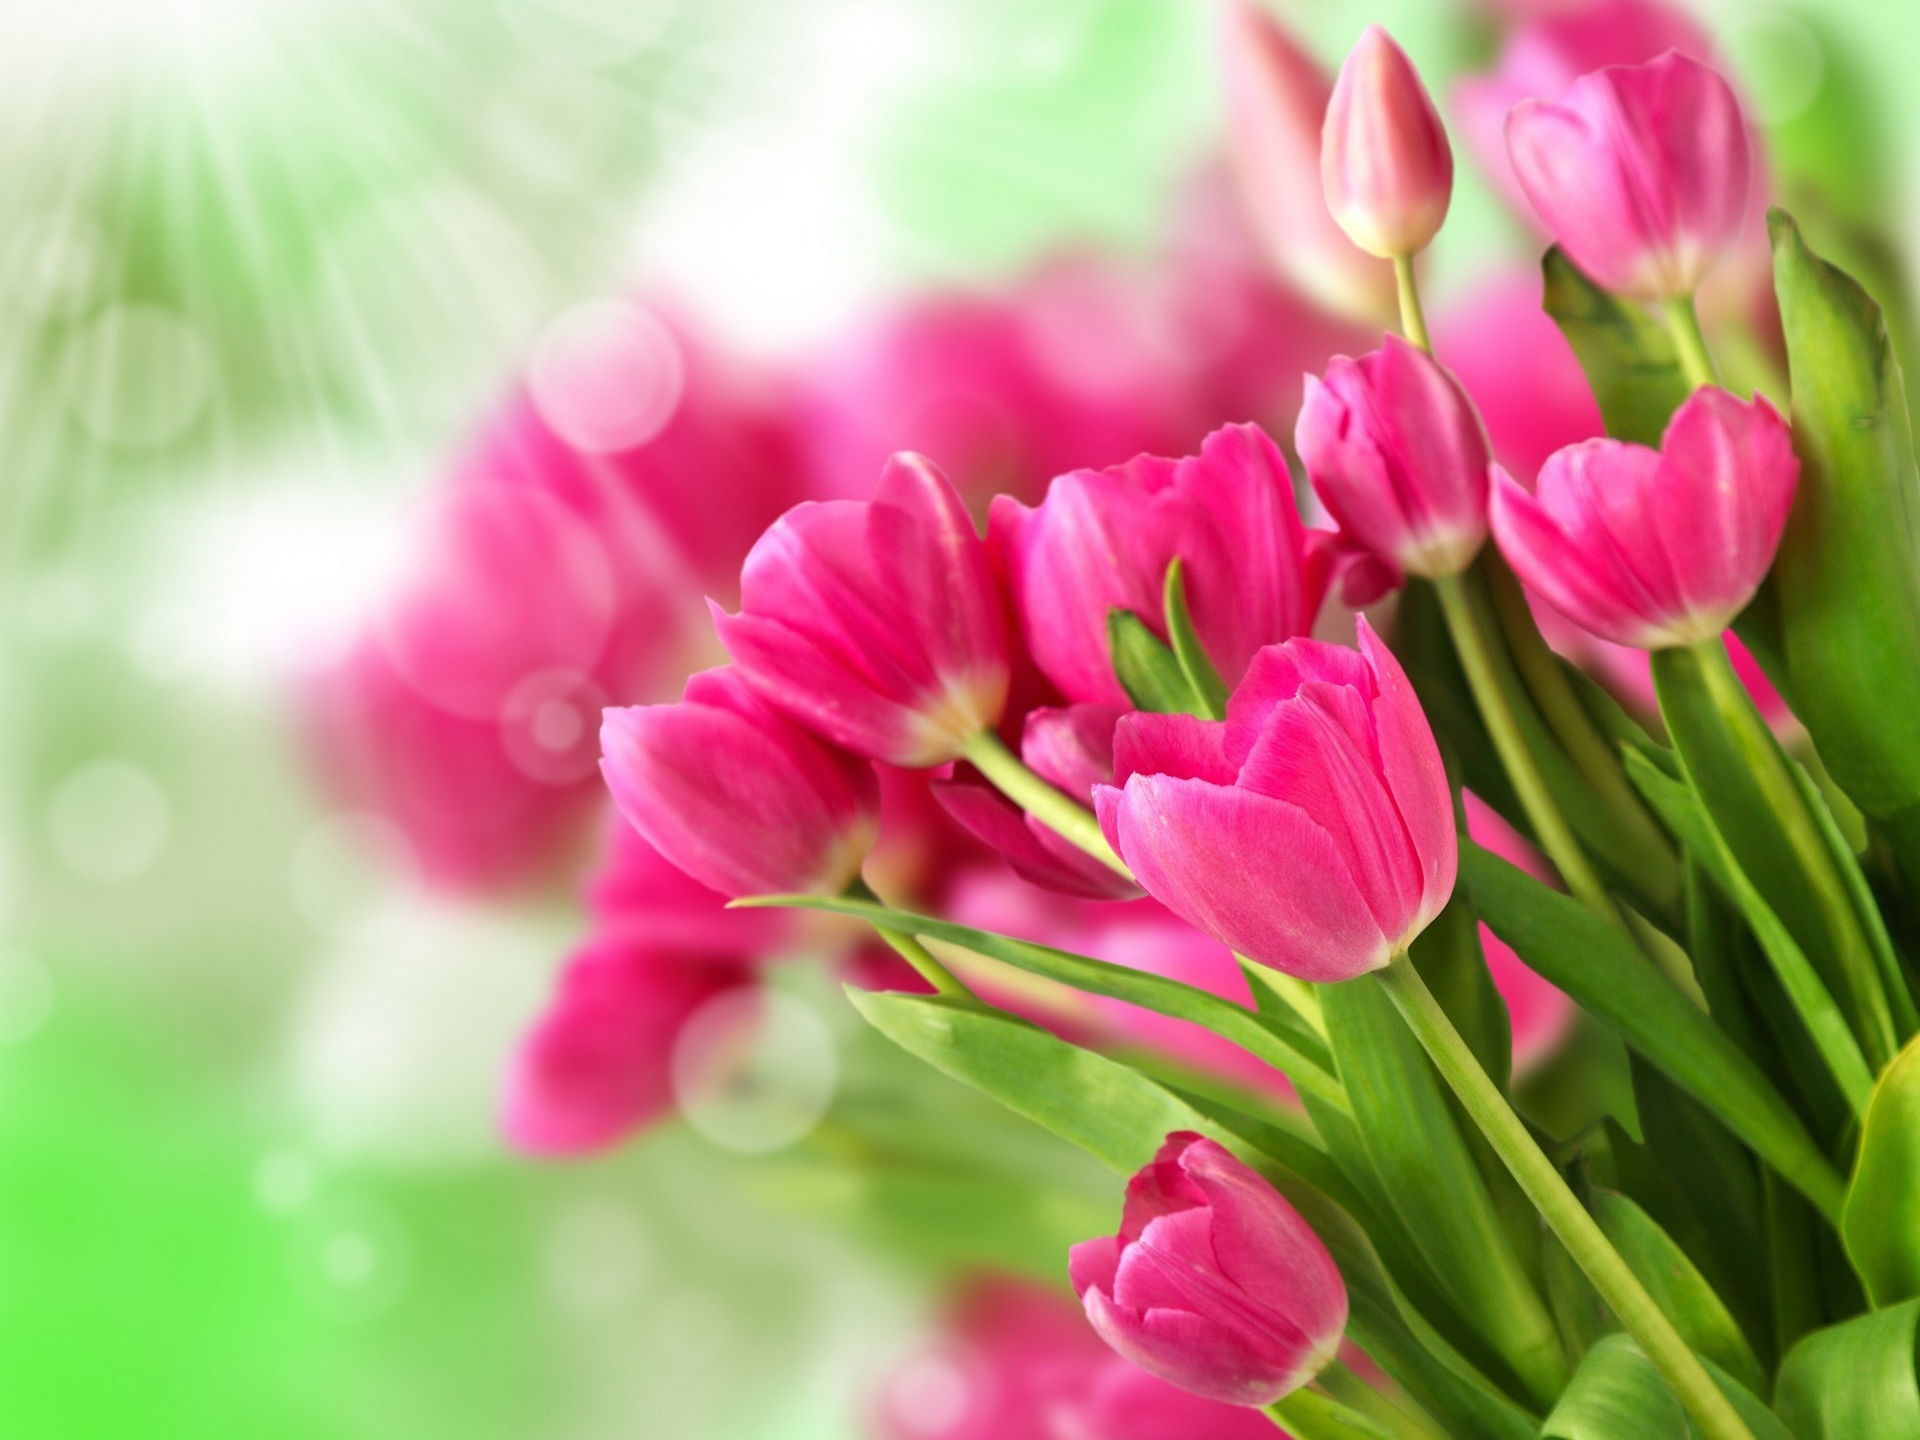 Wallpaper Pink Flowers Bouquet Tulips 1920x1440 Hd Picture Image